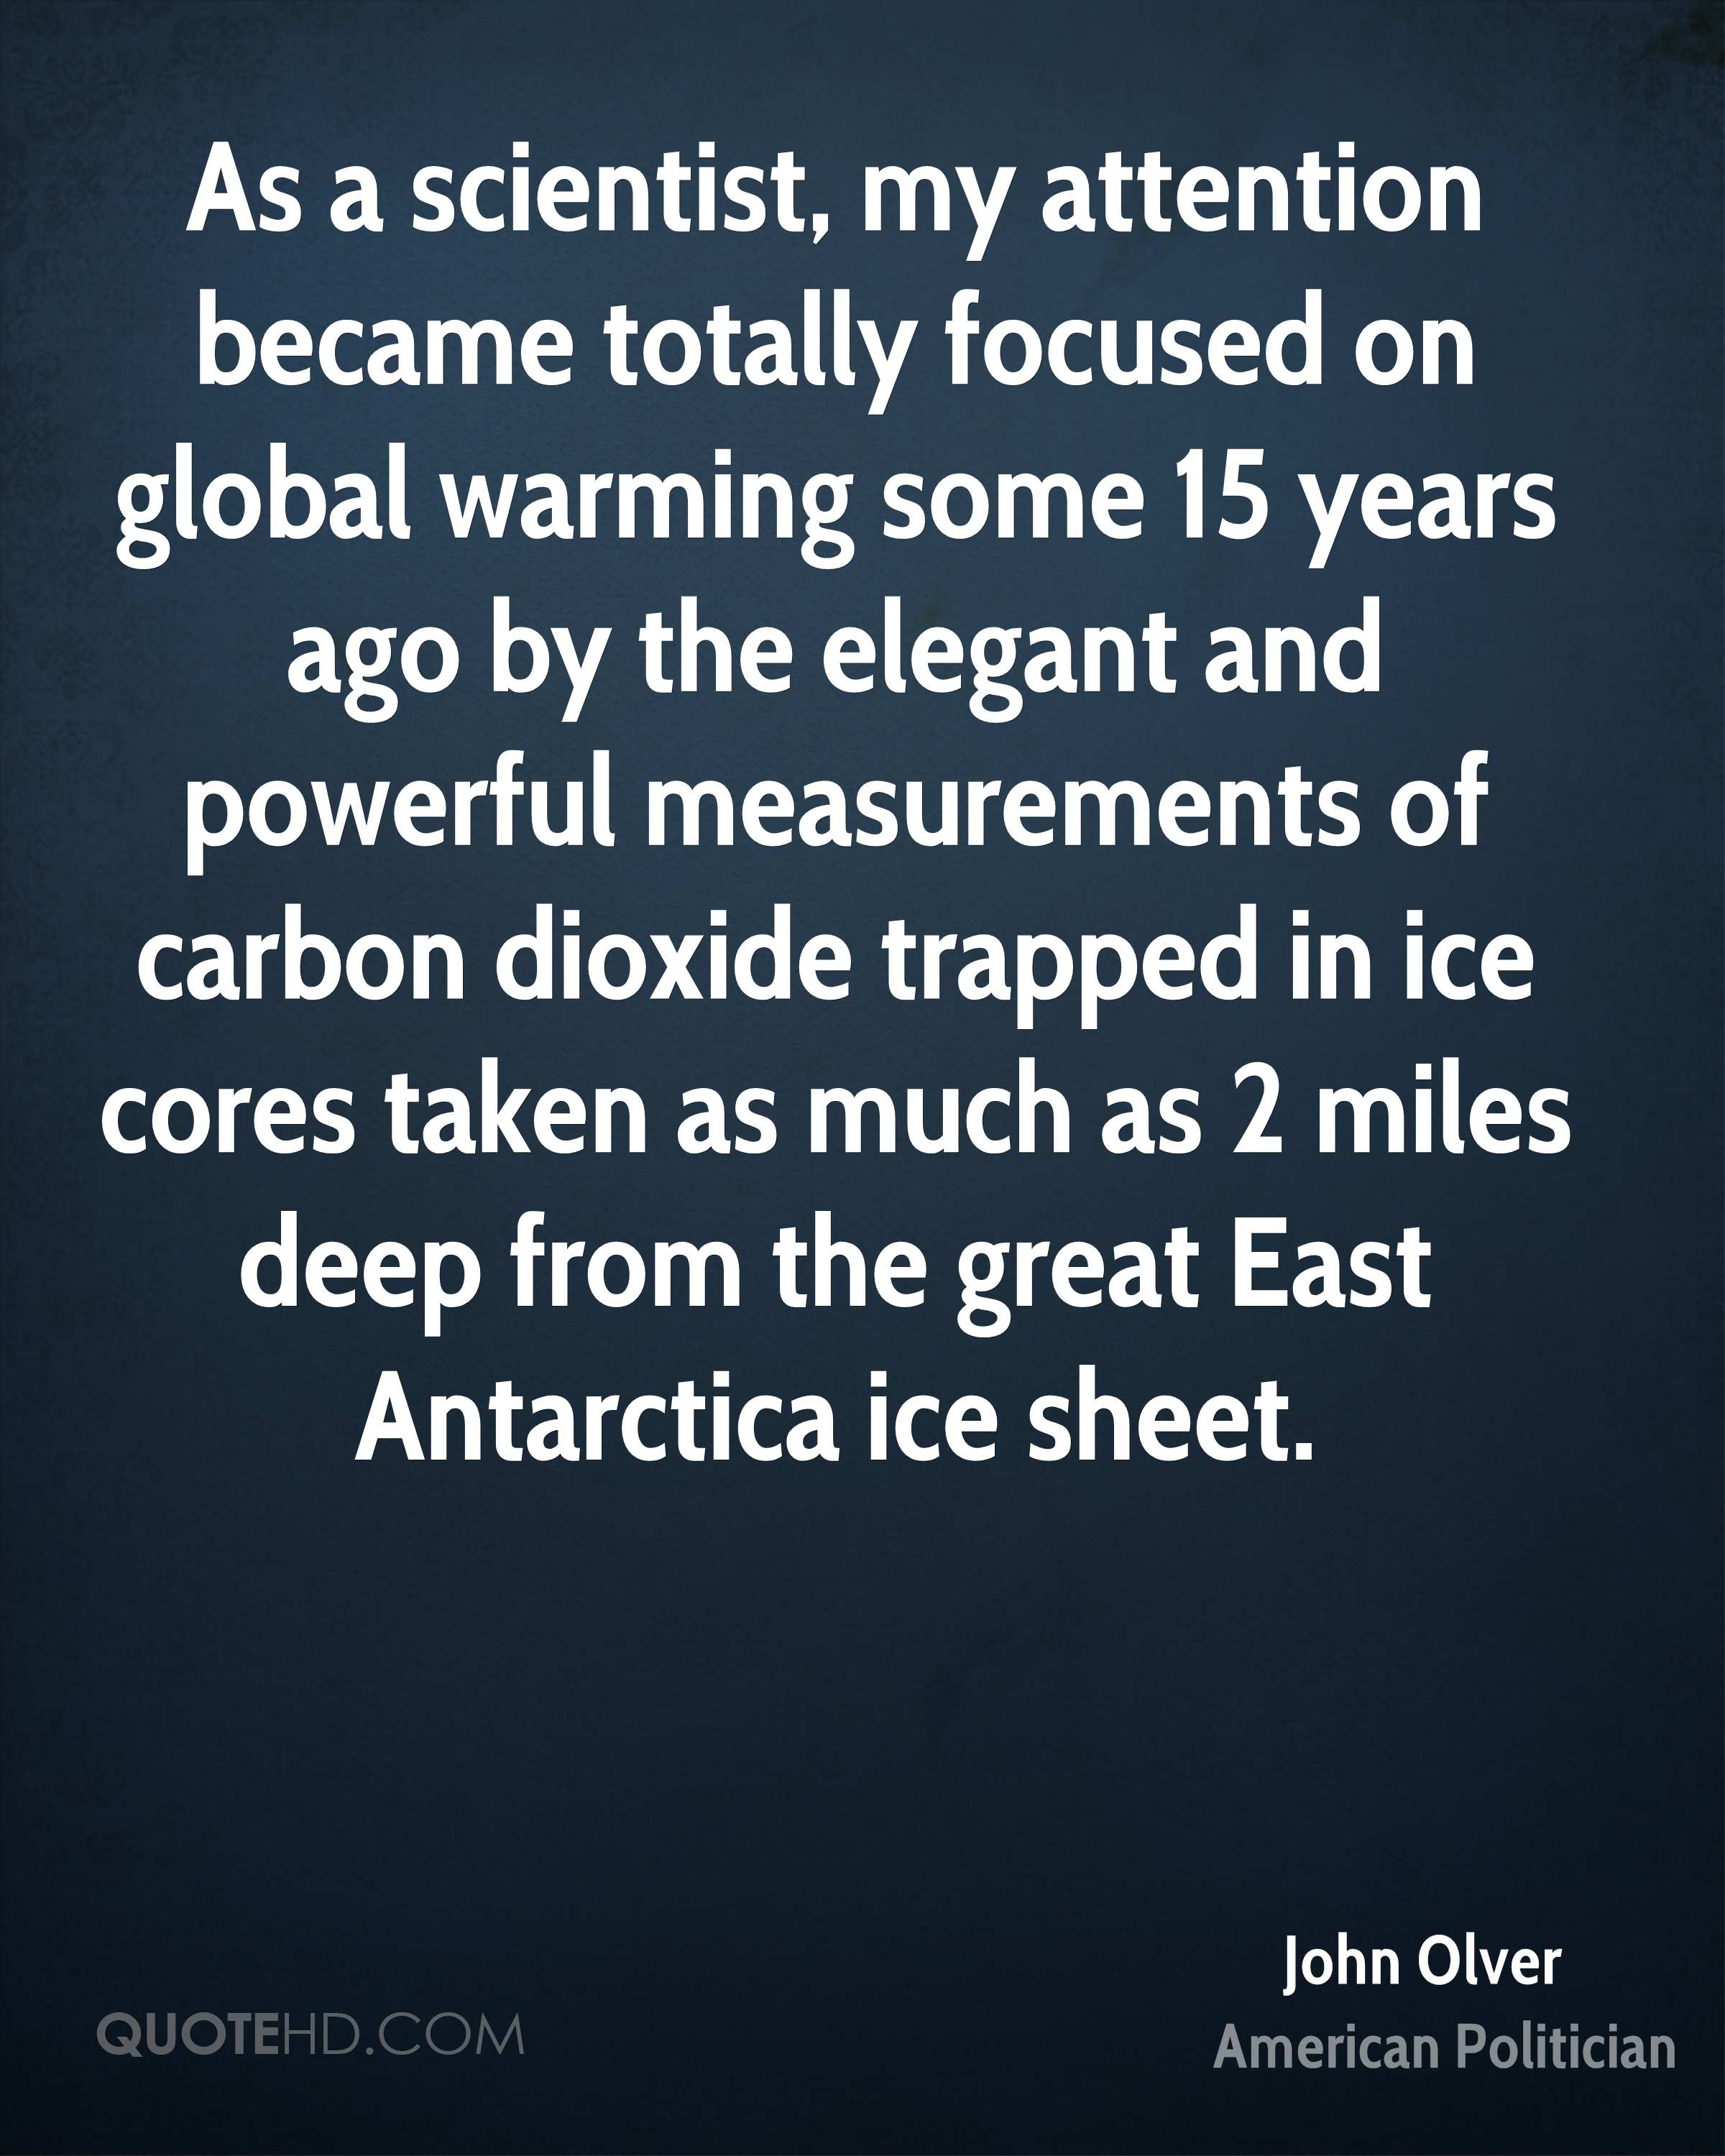 As a scientist, my attention became totally focused on global warming some 15 years ago by the elegant and powerful measurements of carbon dioxide trapped in ice cores taken as much as 2 miles deep from the great East Antarctica ice sheet.